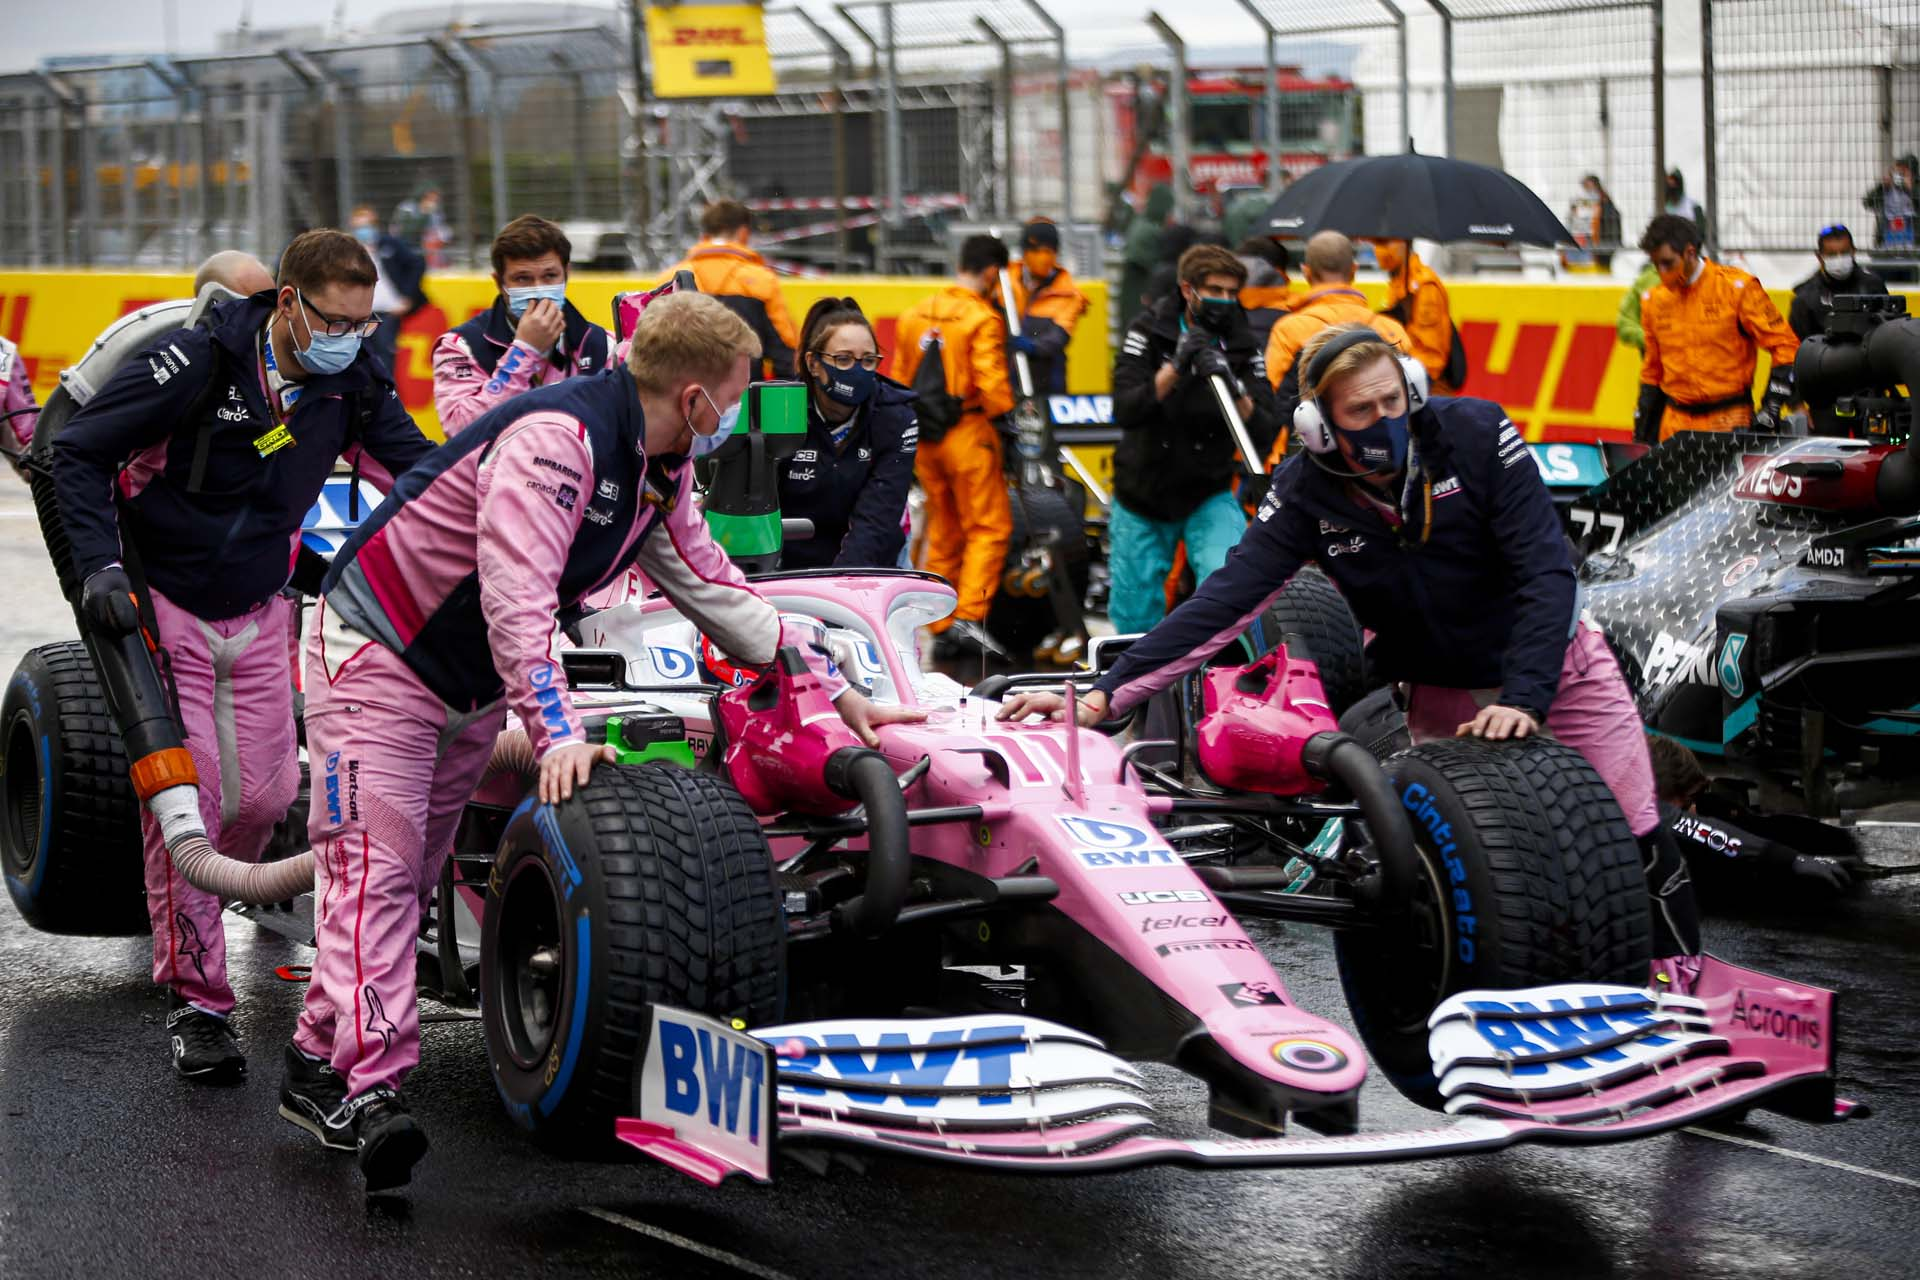 Sergio Perez, Racing Point RP20 on the grid